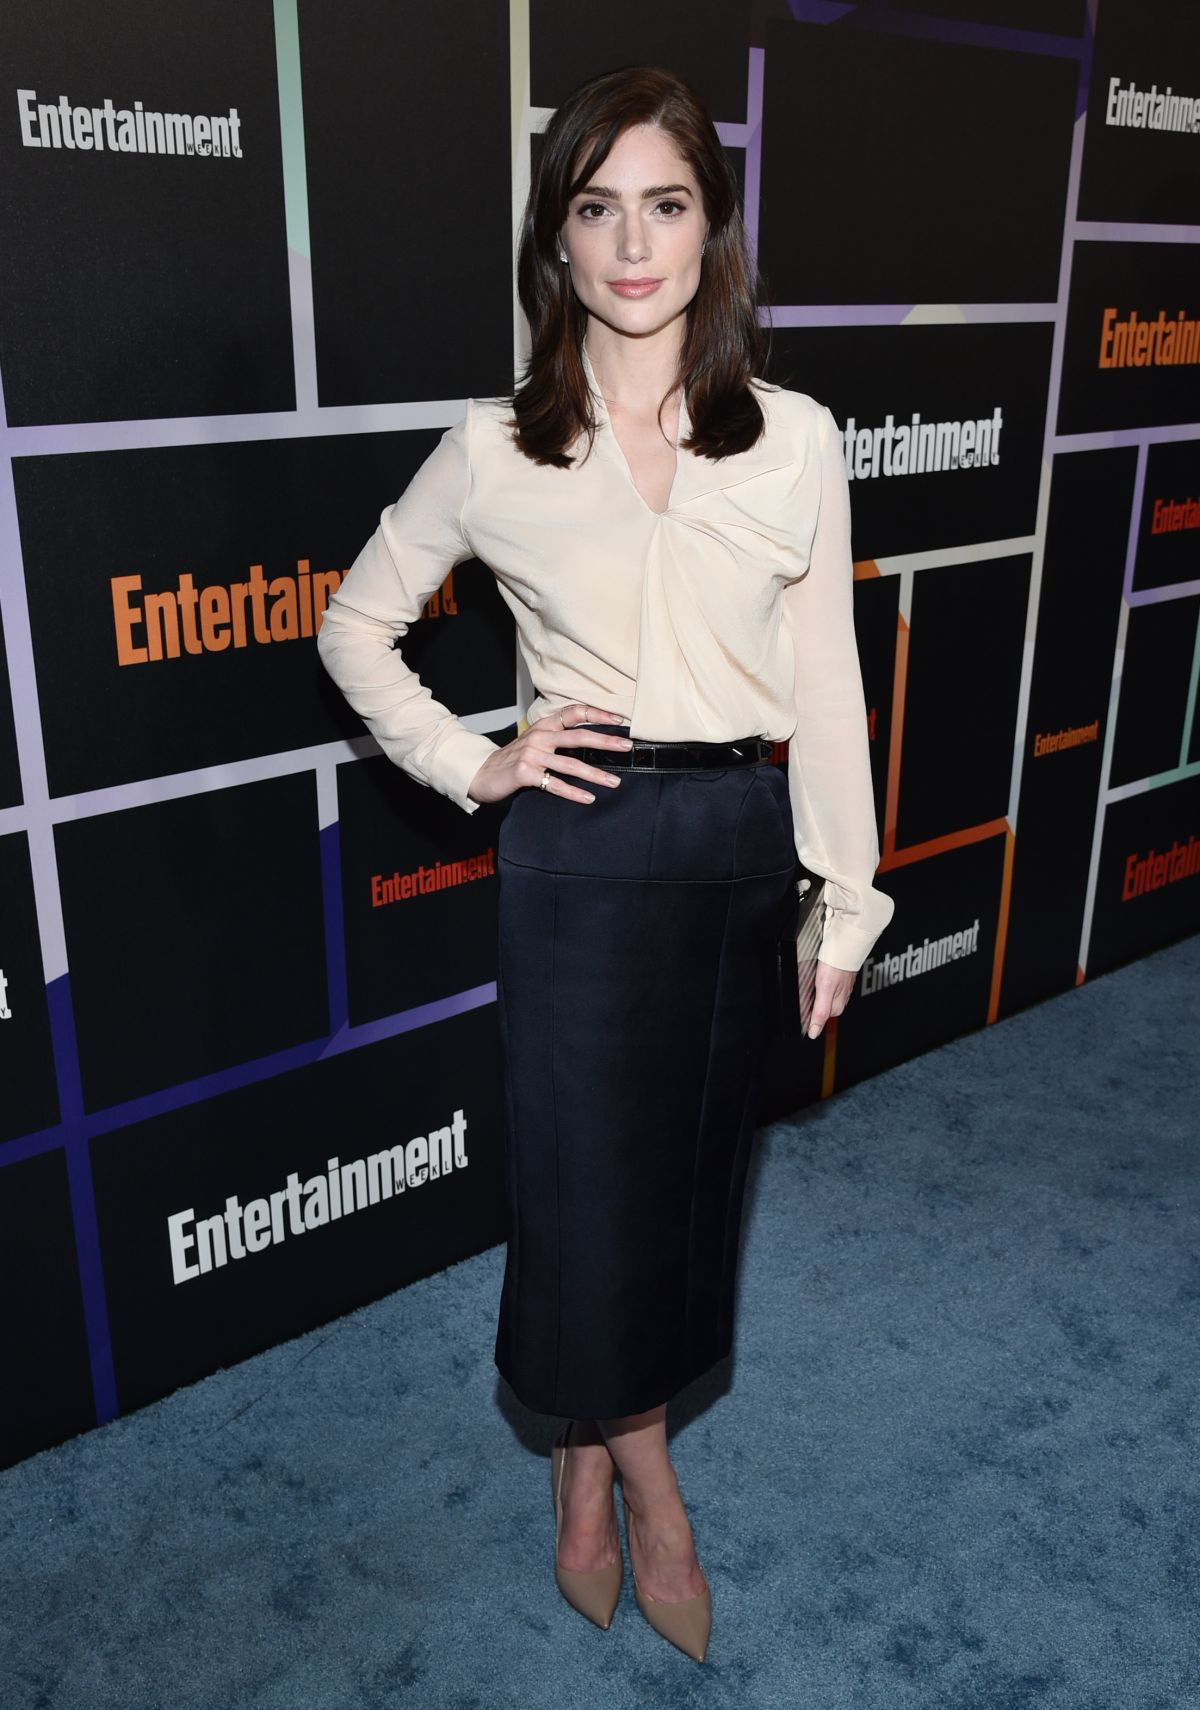 JANET MONTGOMERY at Entertainment Weekly's Comic-con Celebration